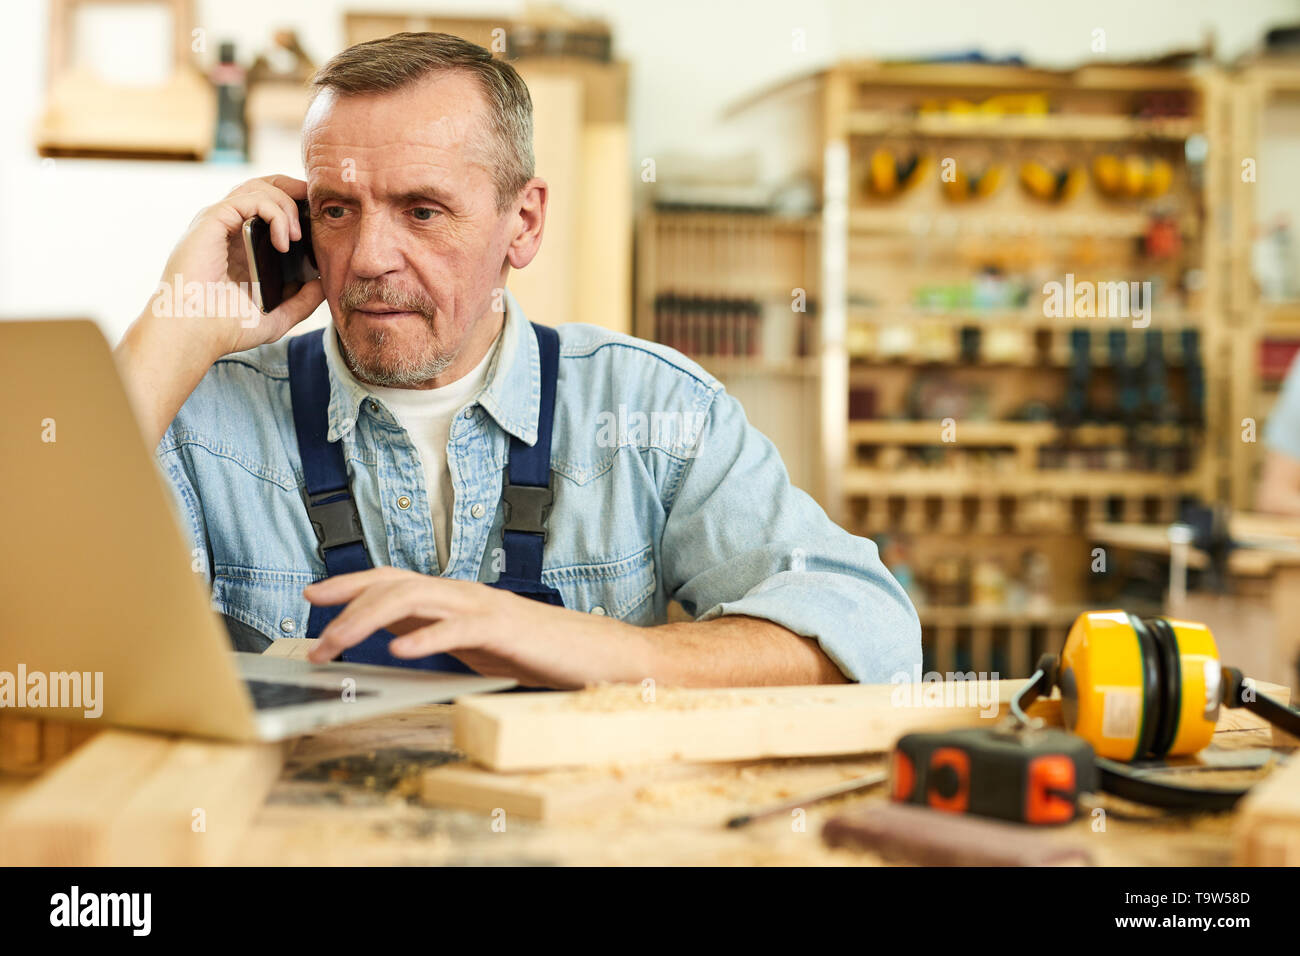 Portrait of modern senior carpenter speaking by phone and using laptop while working in joinery, copy space - Stock Image